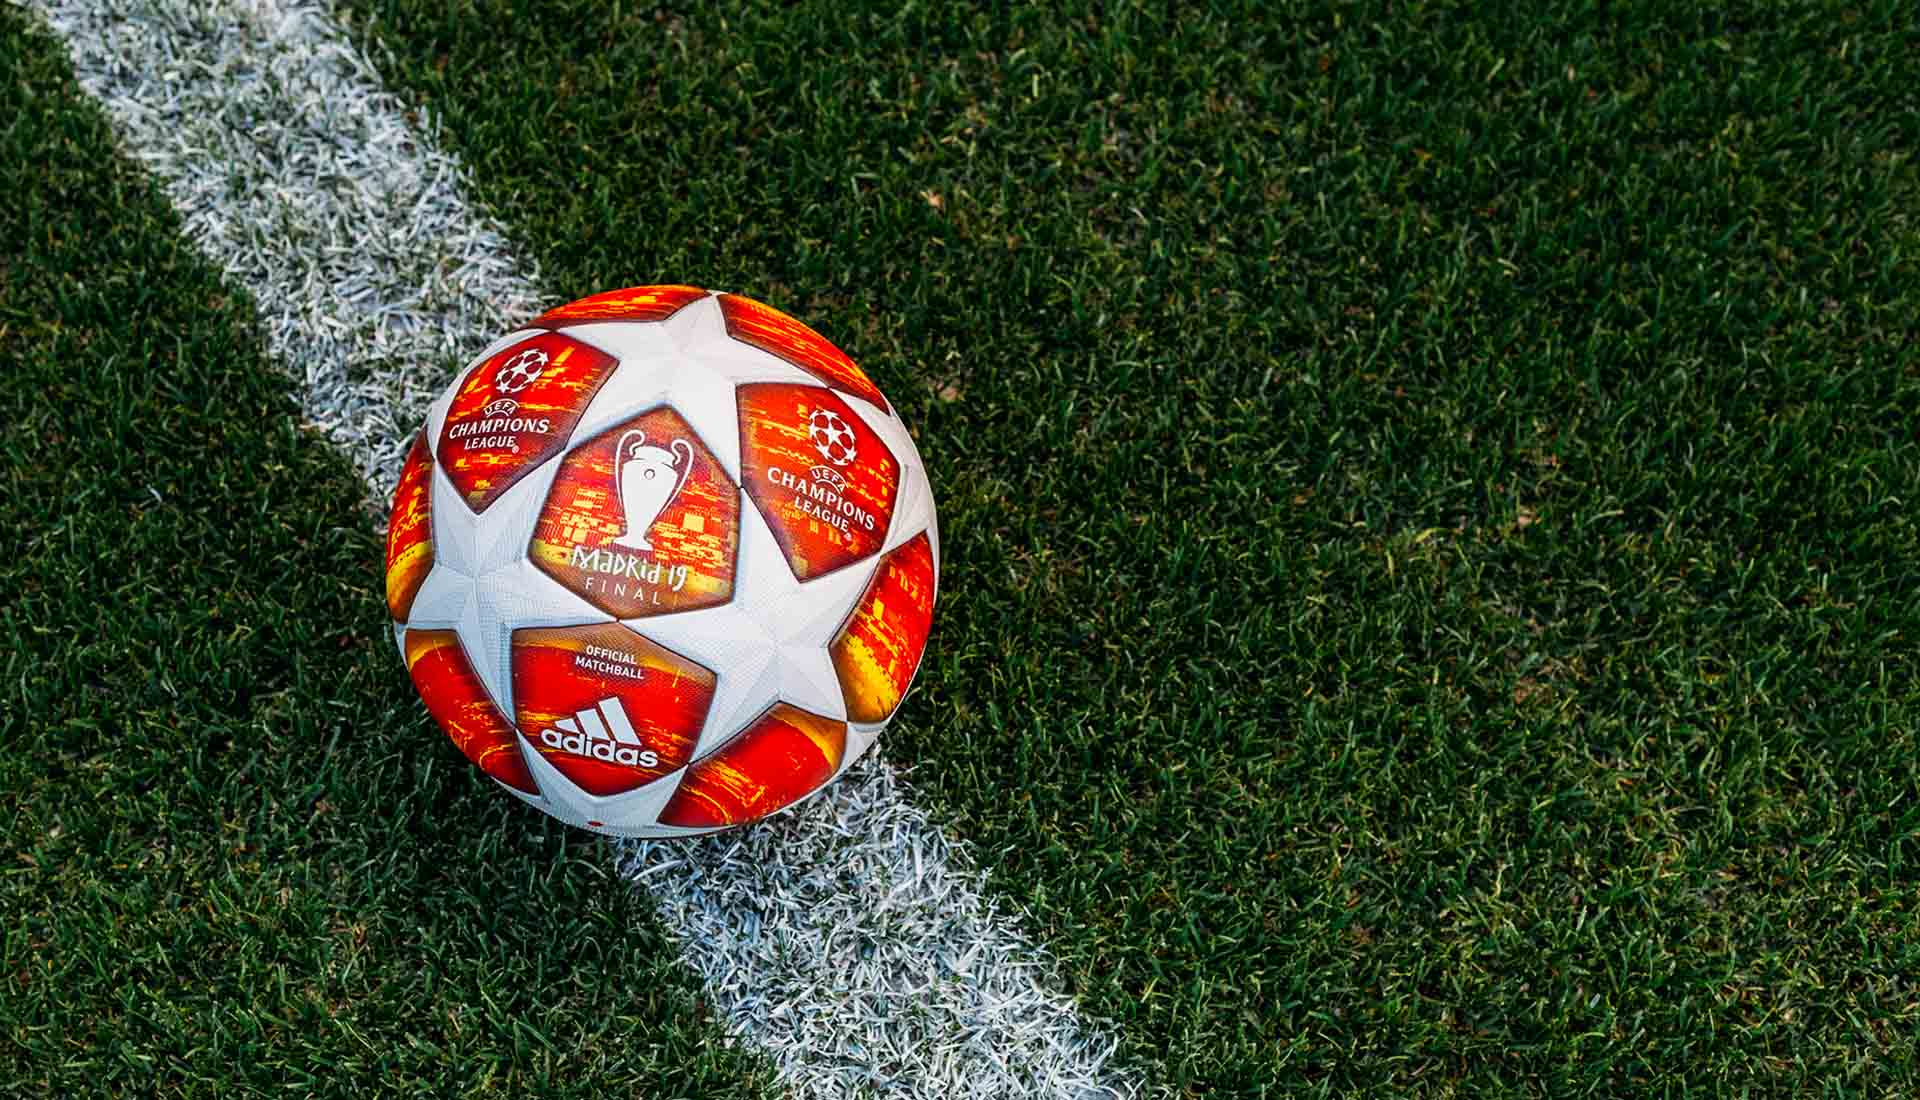 275537152c0 adidas Unveil The 2019 UCL Finale Match Ball - SoccerBible